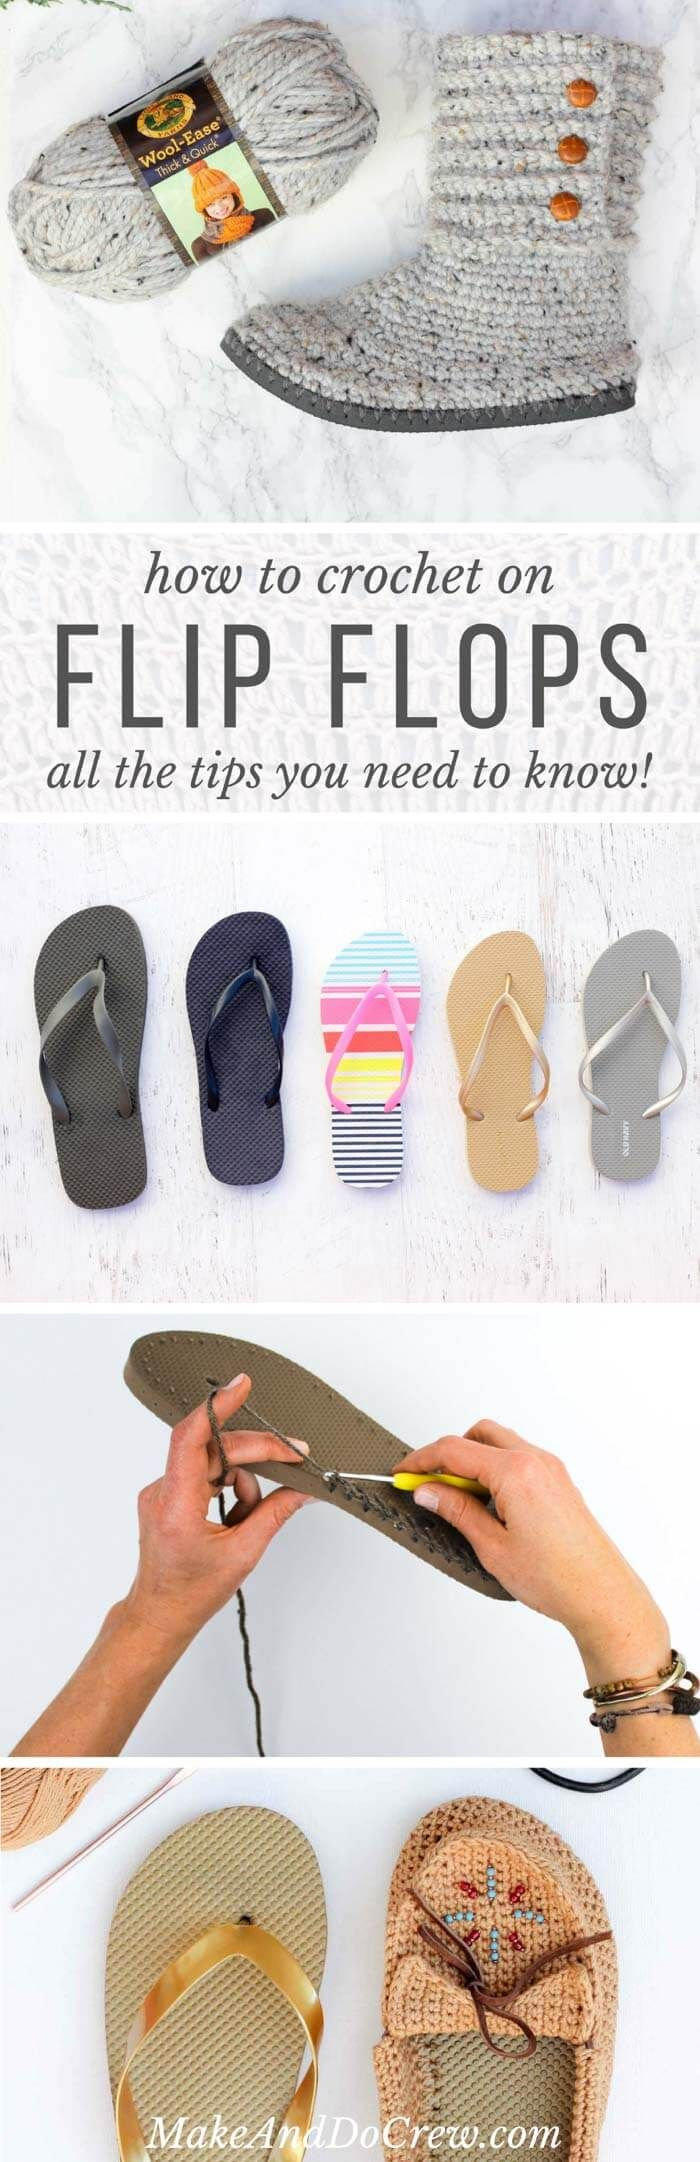 How To Crochet On Flip Flops (And will they fall apart?!) | Crochet ...